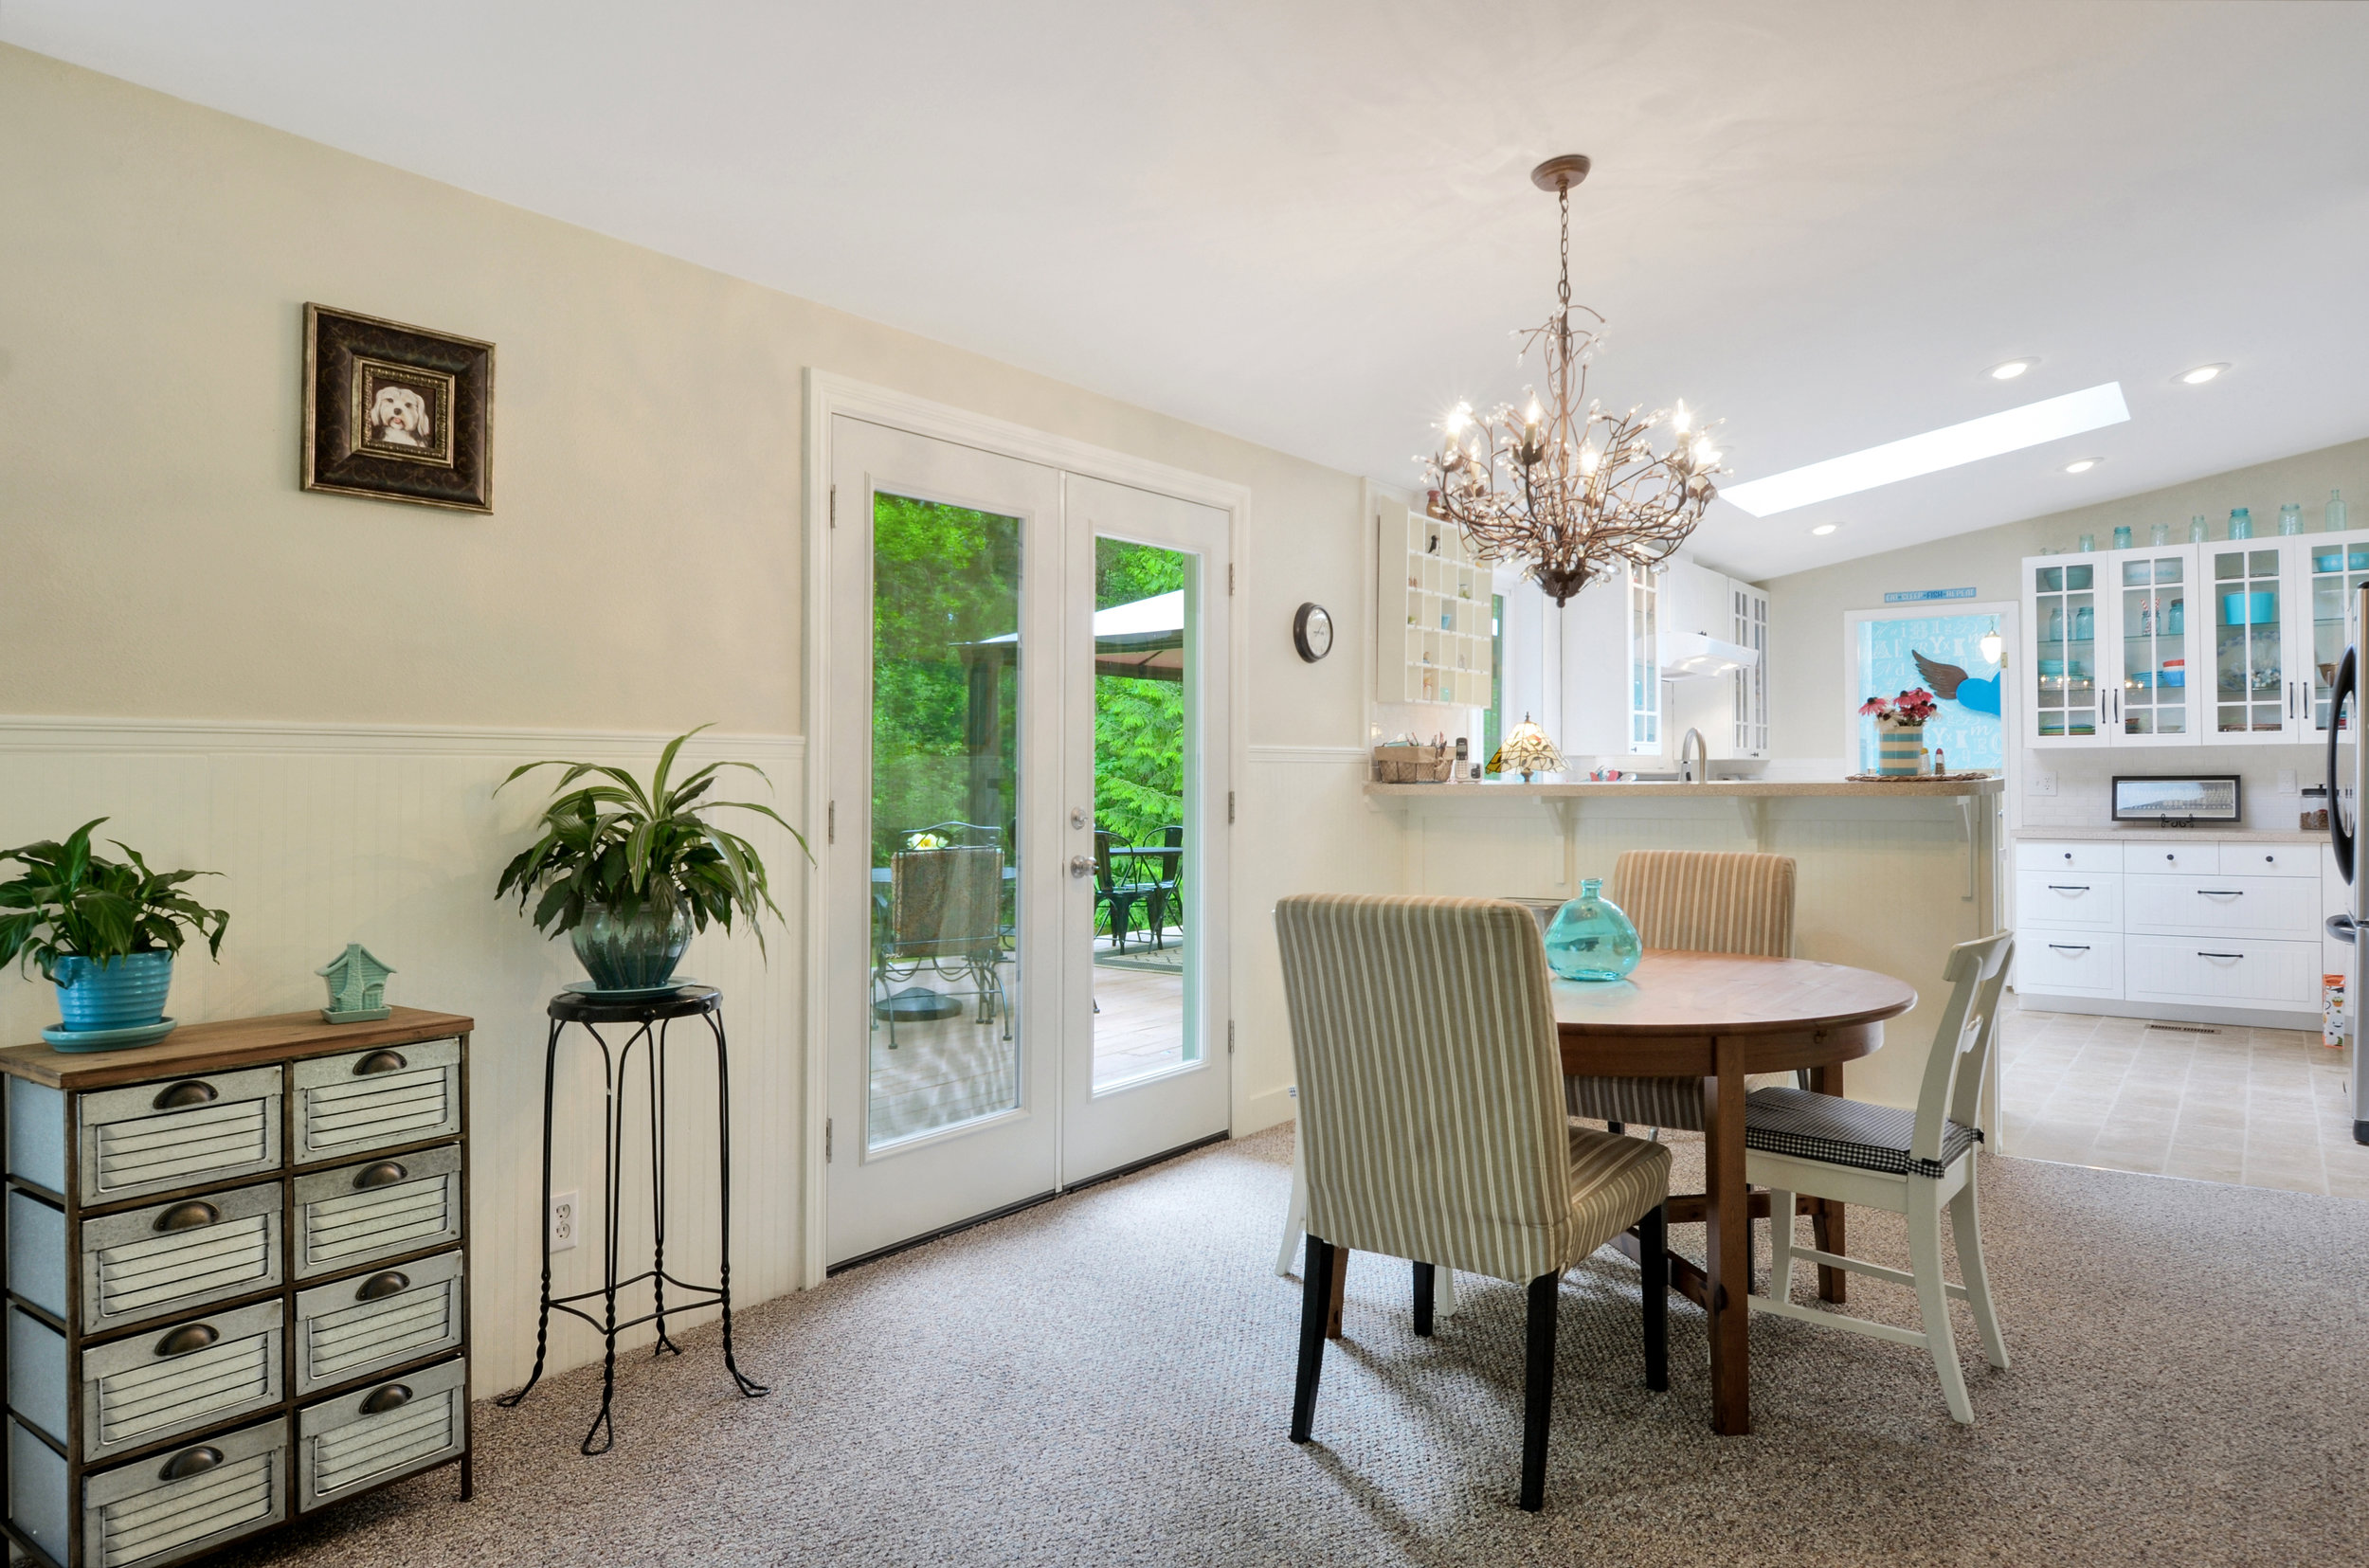 From the entry and front living room, step through to the dining area with its French doors out to the back yard and deck.